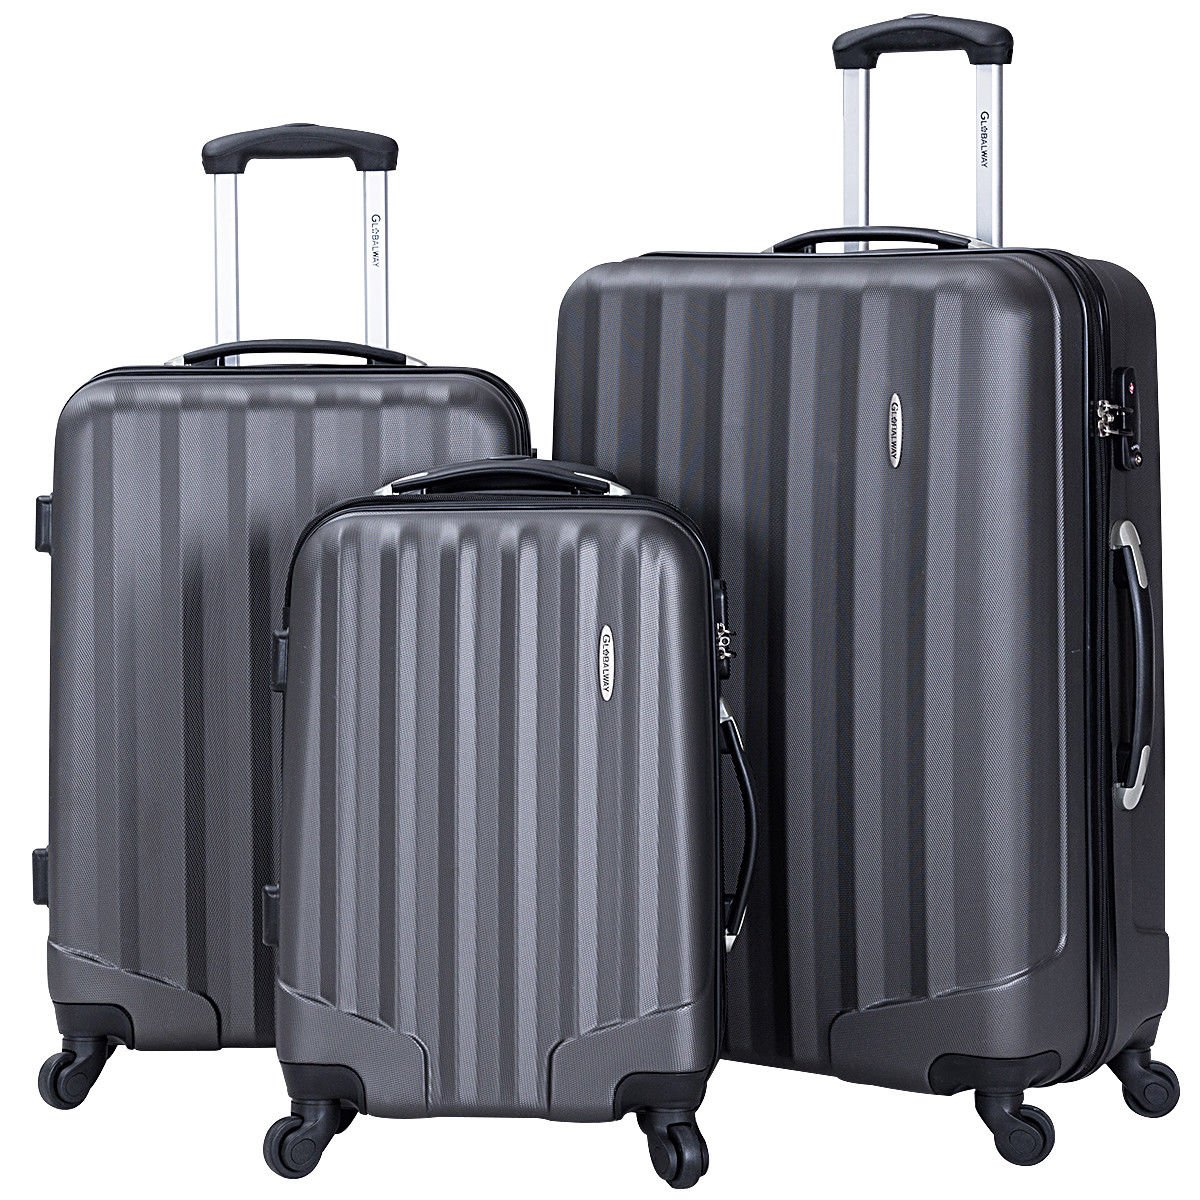 Goplus 3 Pcs Luggage Set ABS Hardshell Travel Bag Trolley Suitcase w/TSA Lock (Grey)